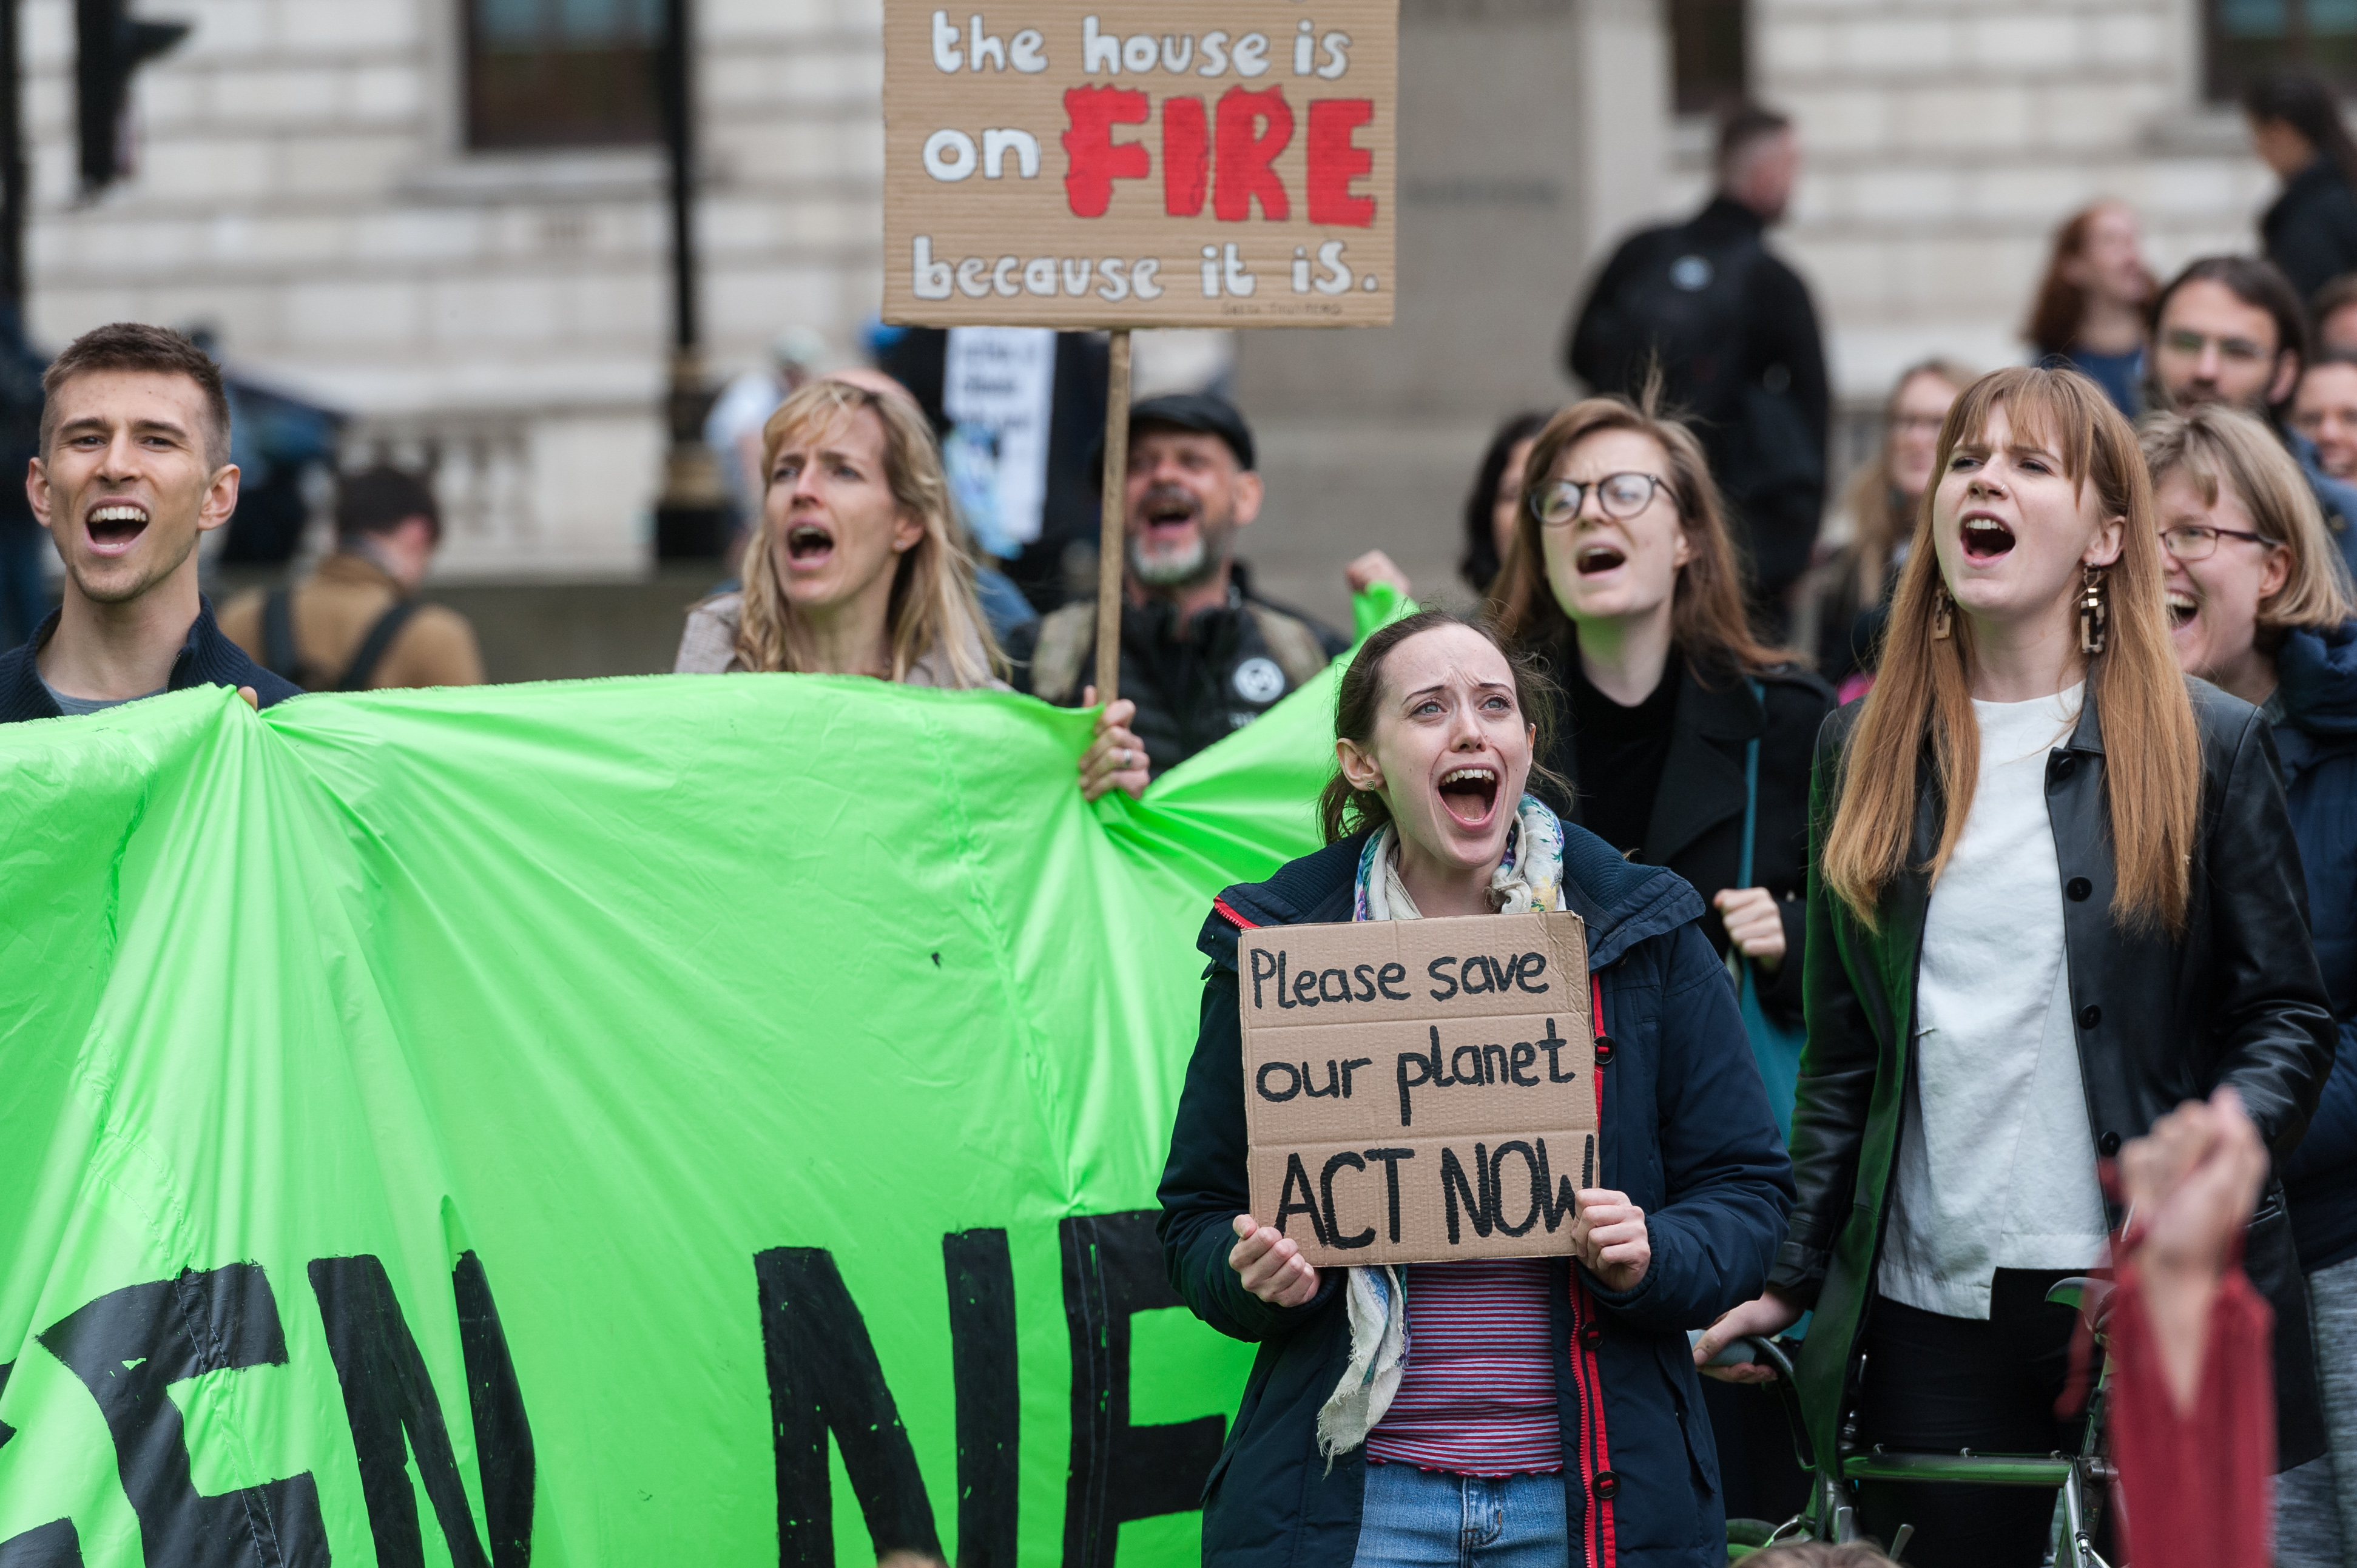 Activists gathered in Parliament Square in London this week to demand that the United Kingdom's parliament declare a climate emergency. The country's Committee on Climate Change recommended this week that the UK reach net-zero carbon emissions by 2050.